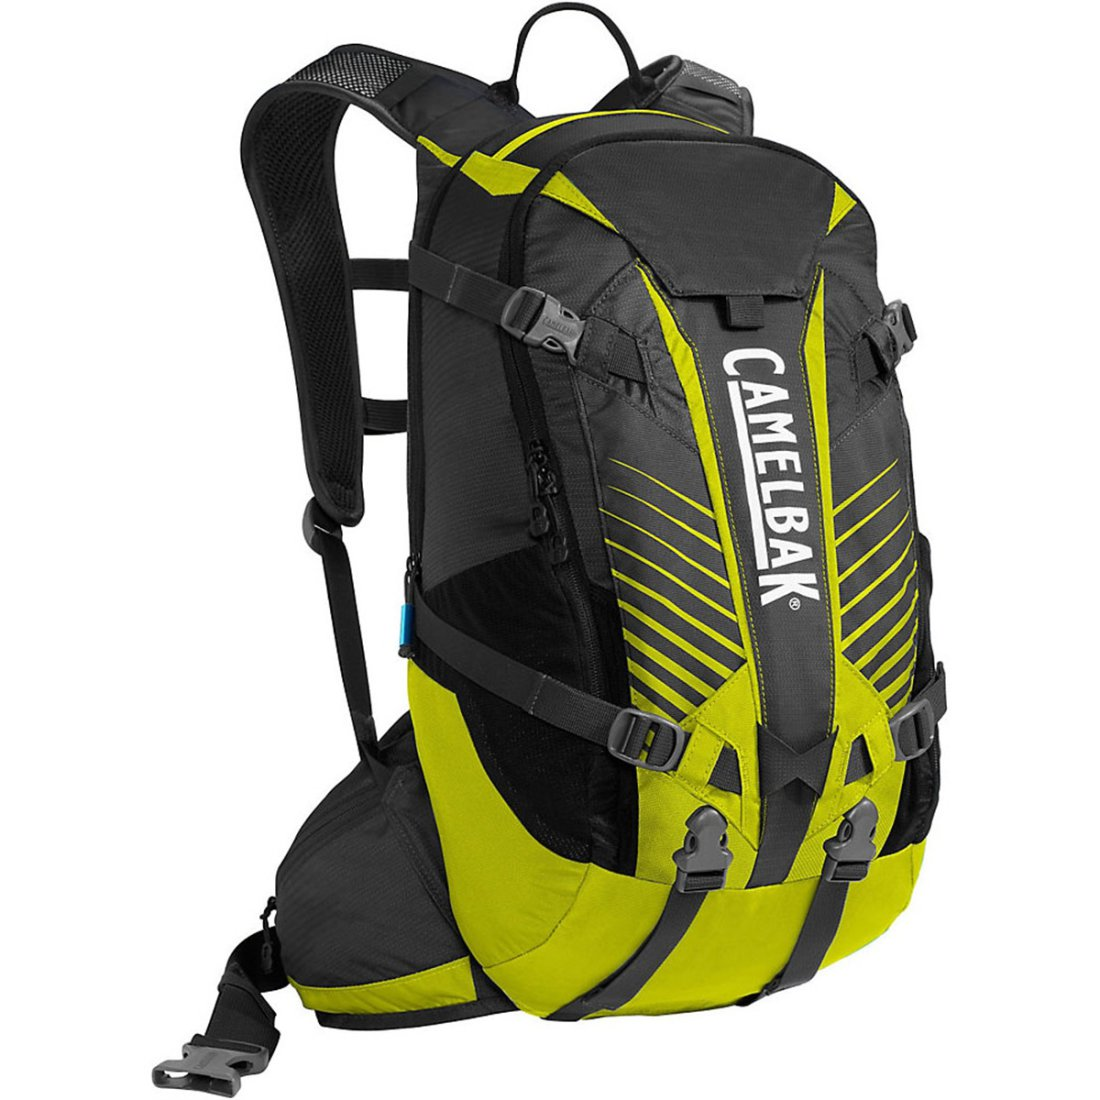 new design best release info on CAMELBAK K.U.D.U. 18 2016 Charcoal / Sulphur Springs Bag / Back pack